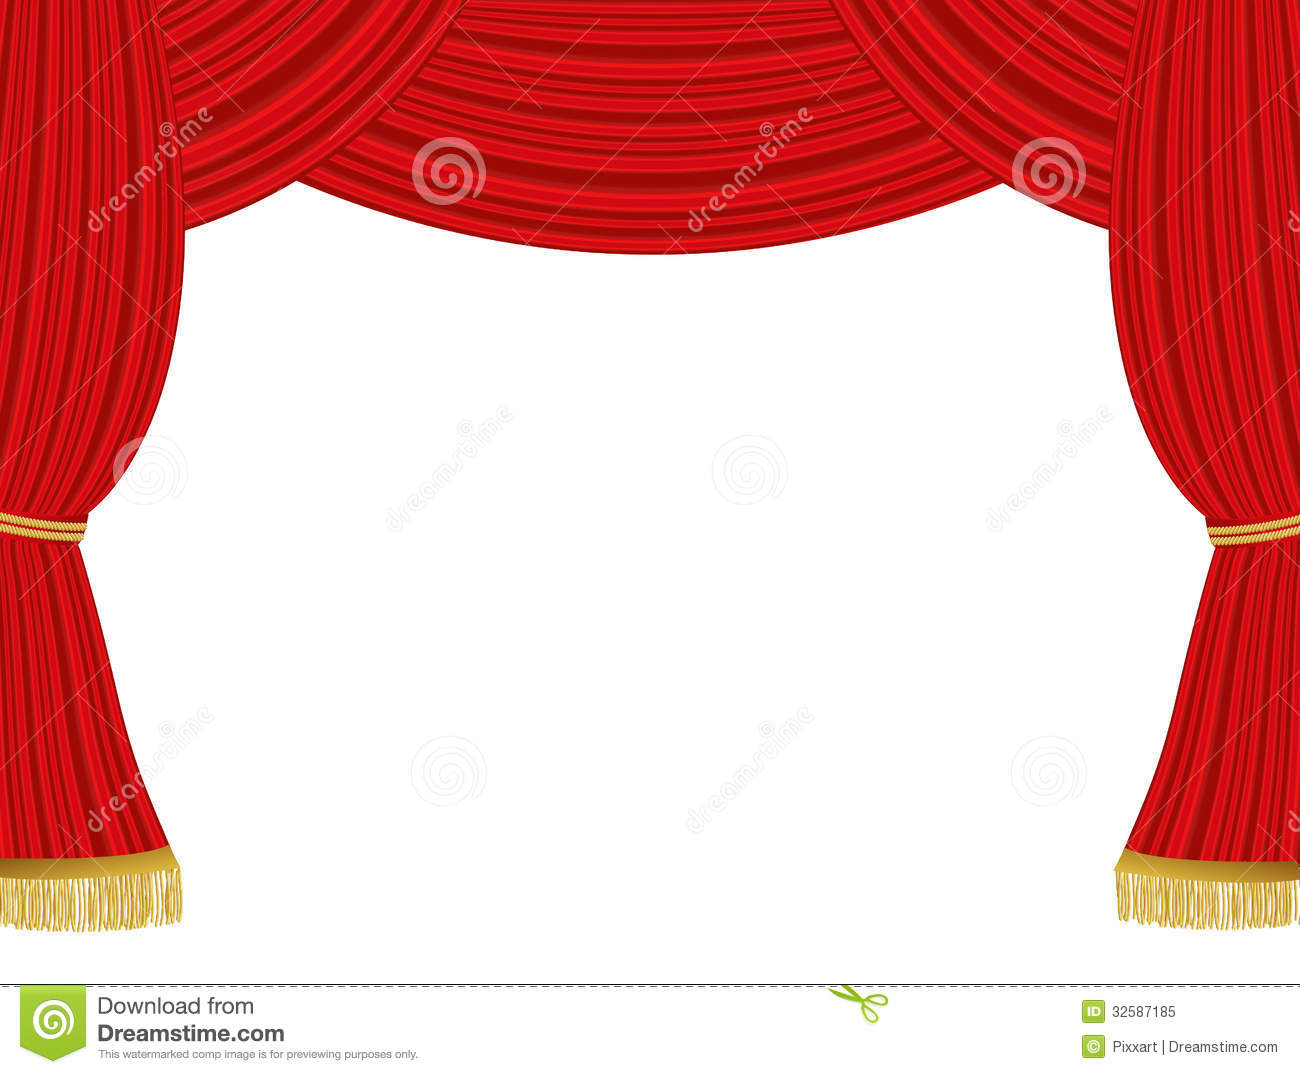 Theater curtains background royalty free stock photo image 32587185